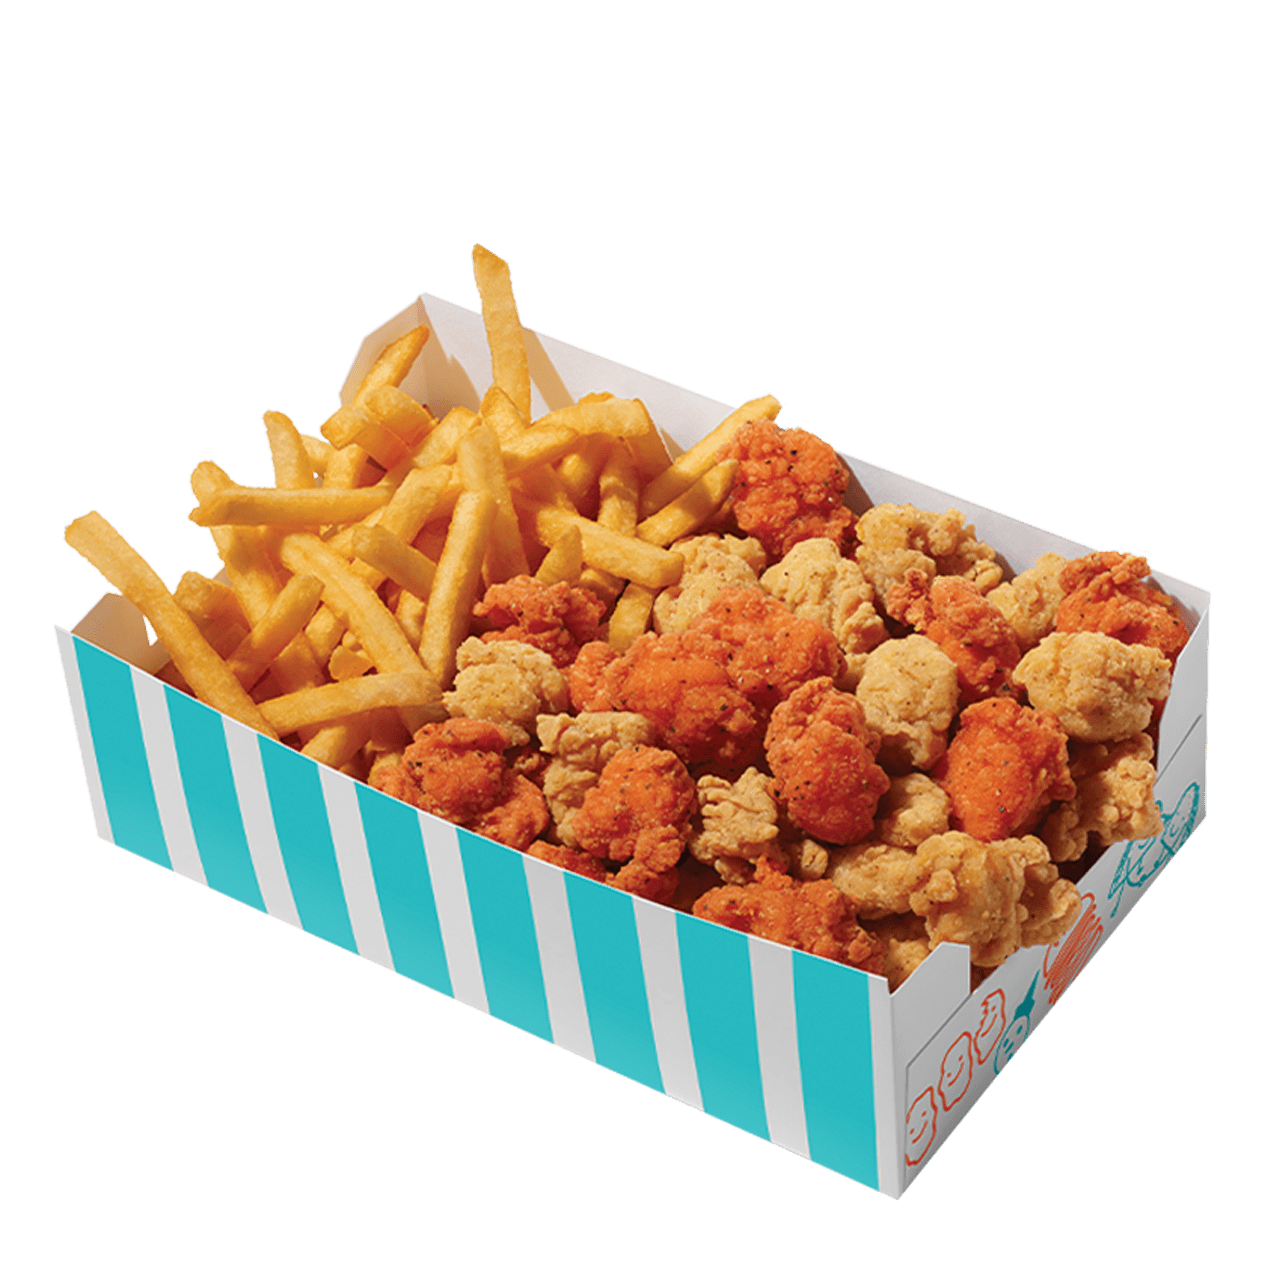 50 / 50 Popcorn Chicken Big Box